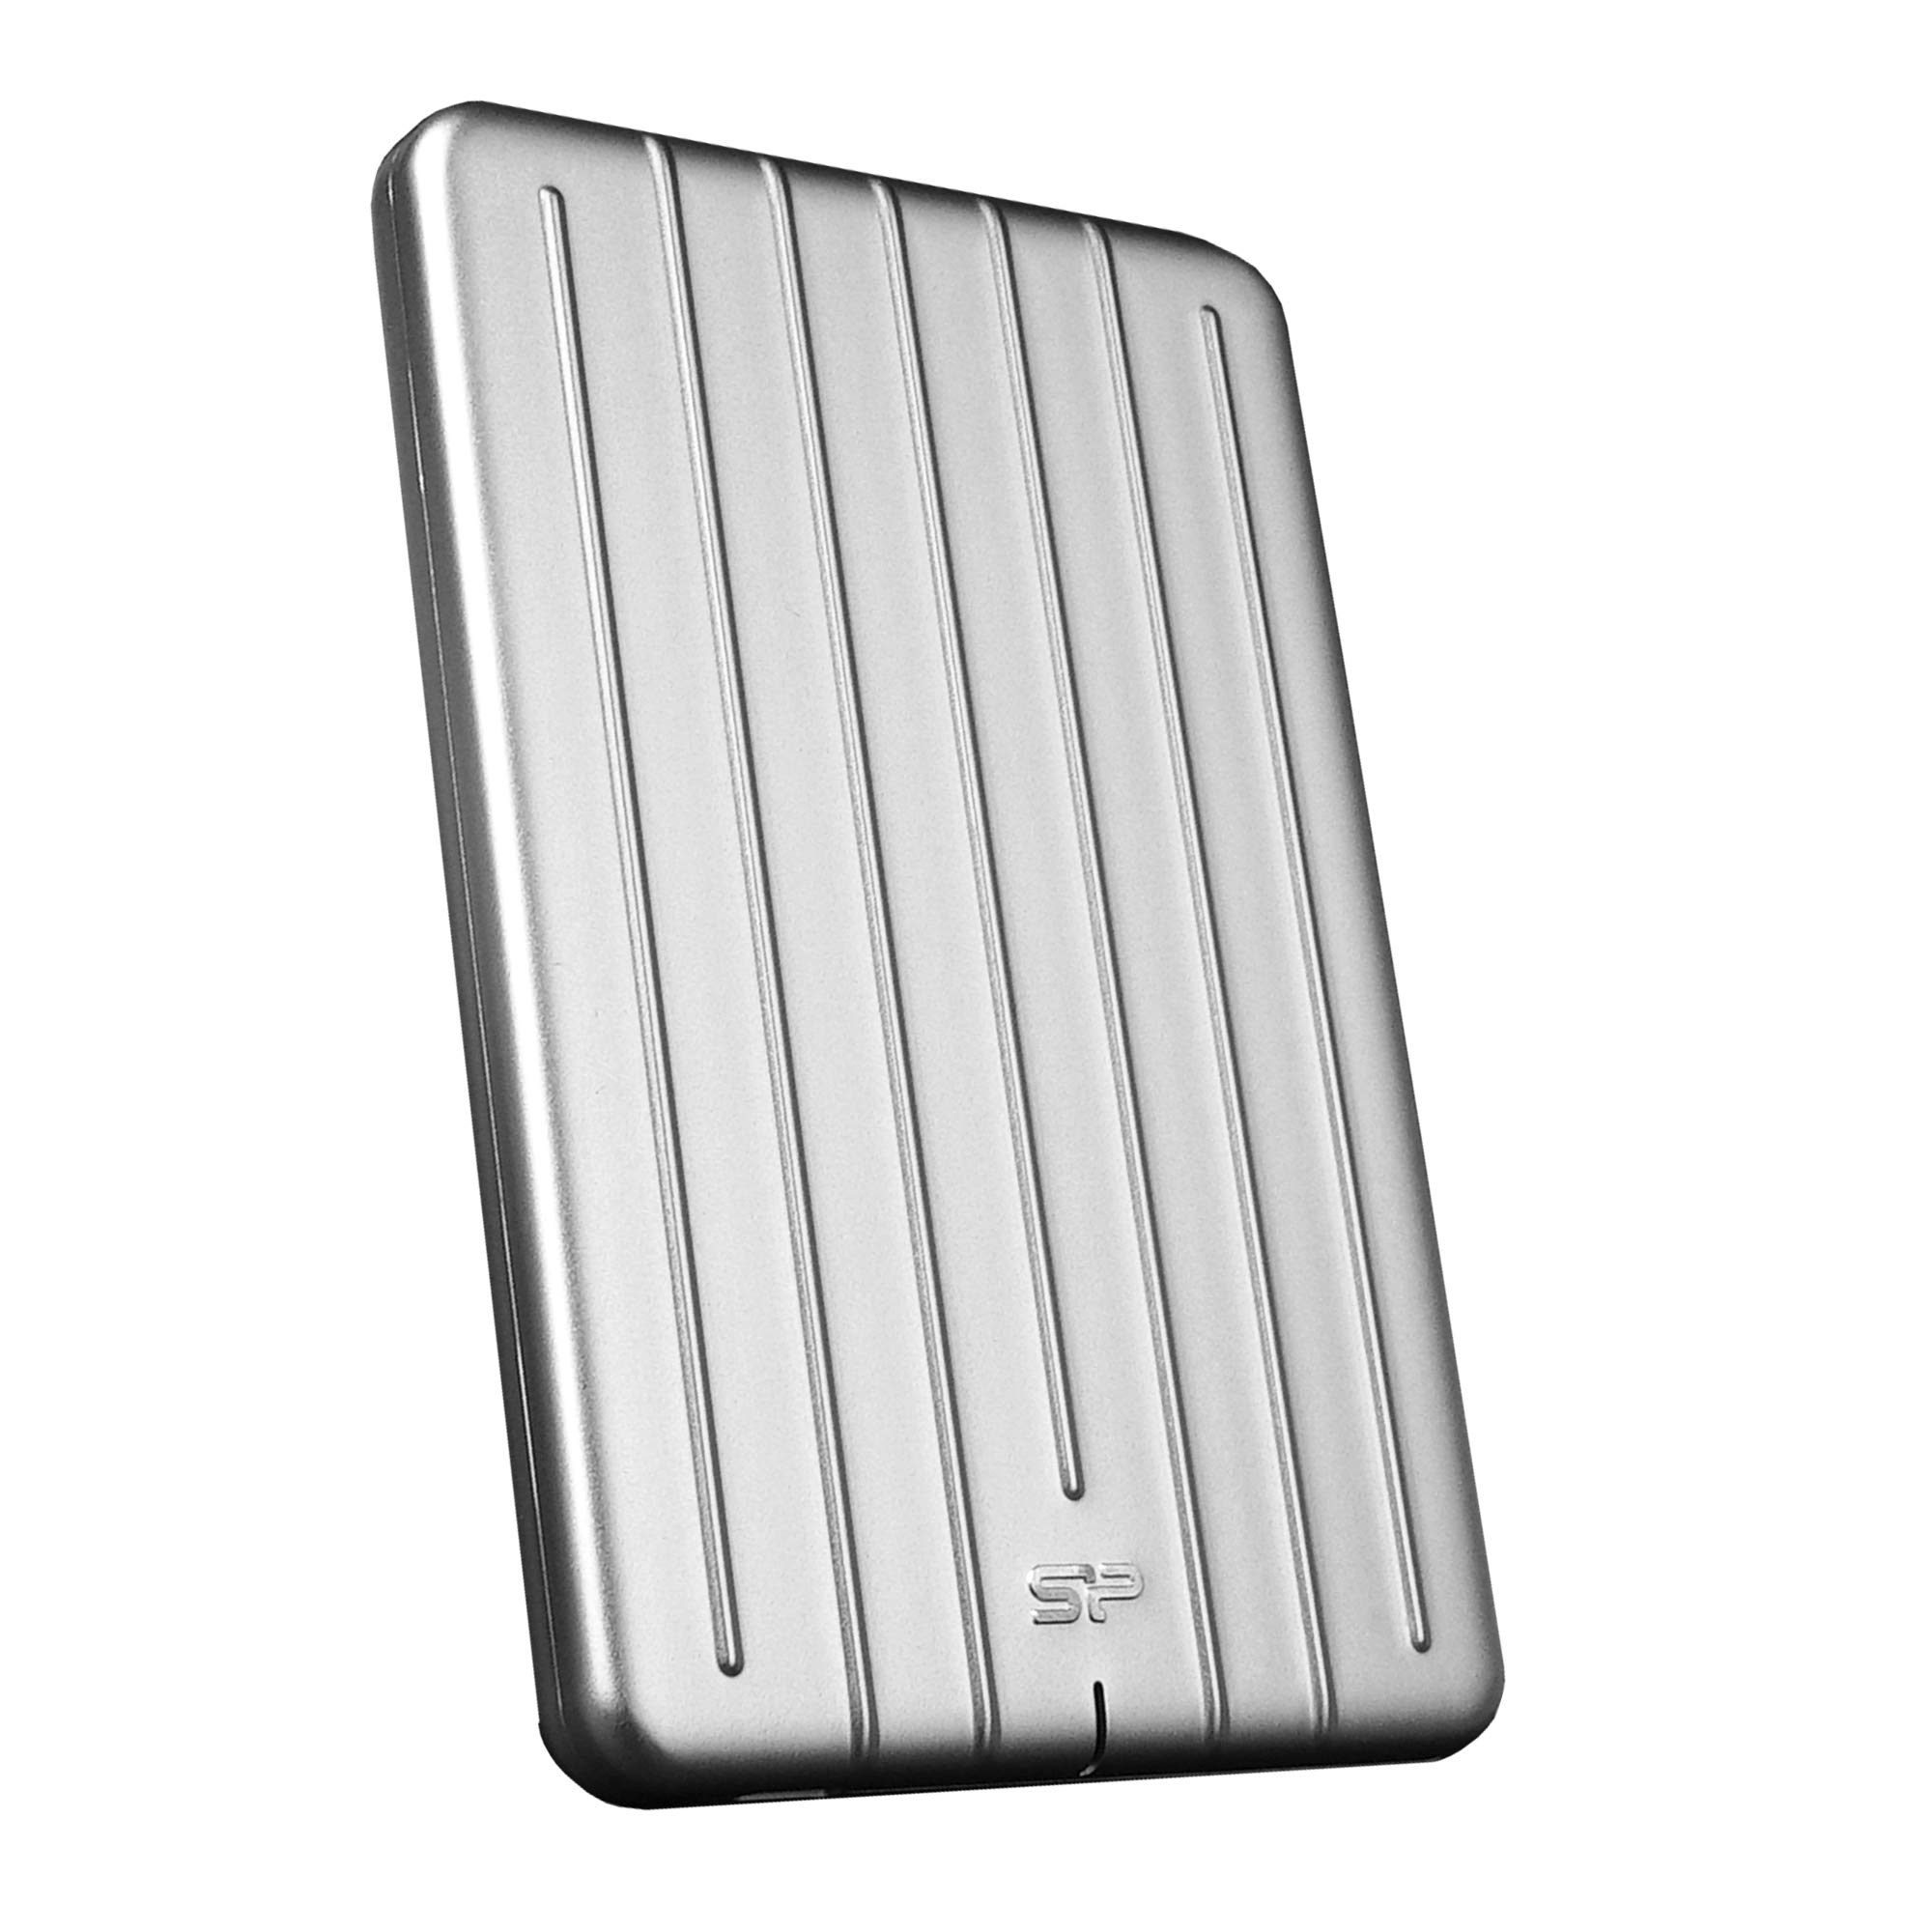 Silicon Power Bolt B75 240GB Type-C External Solid State Drive by SP Silicon Power (Image #1)